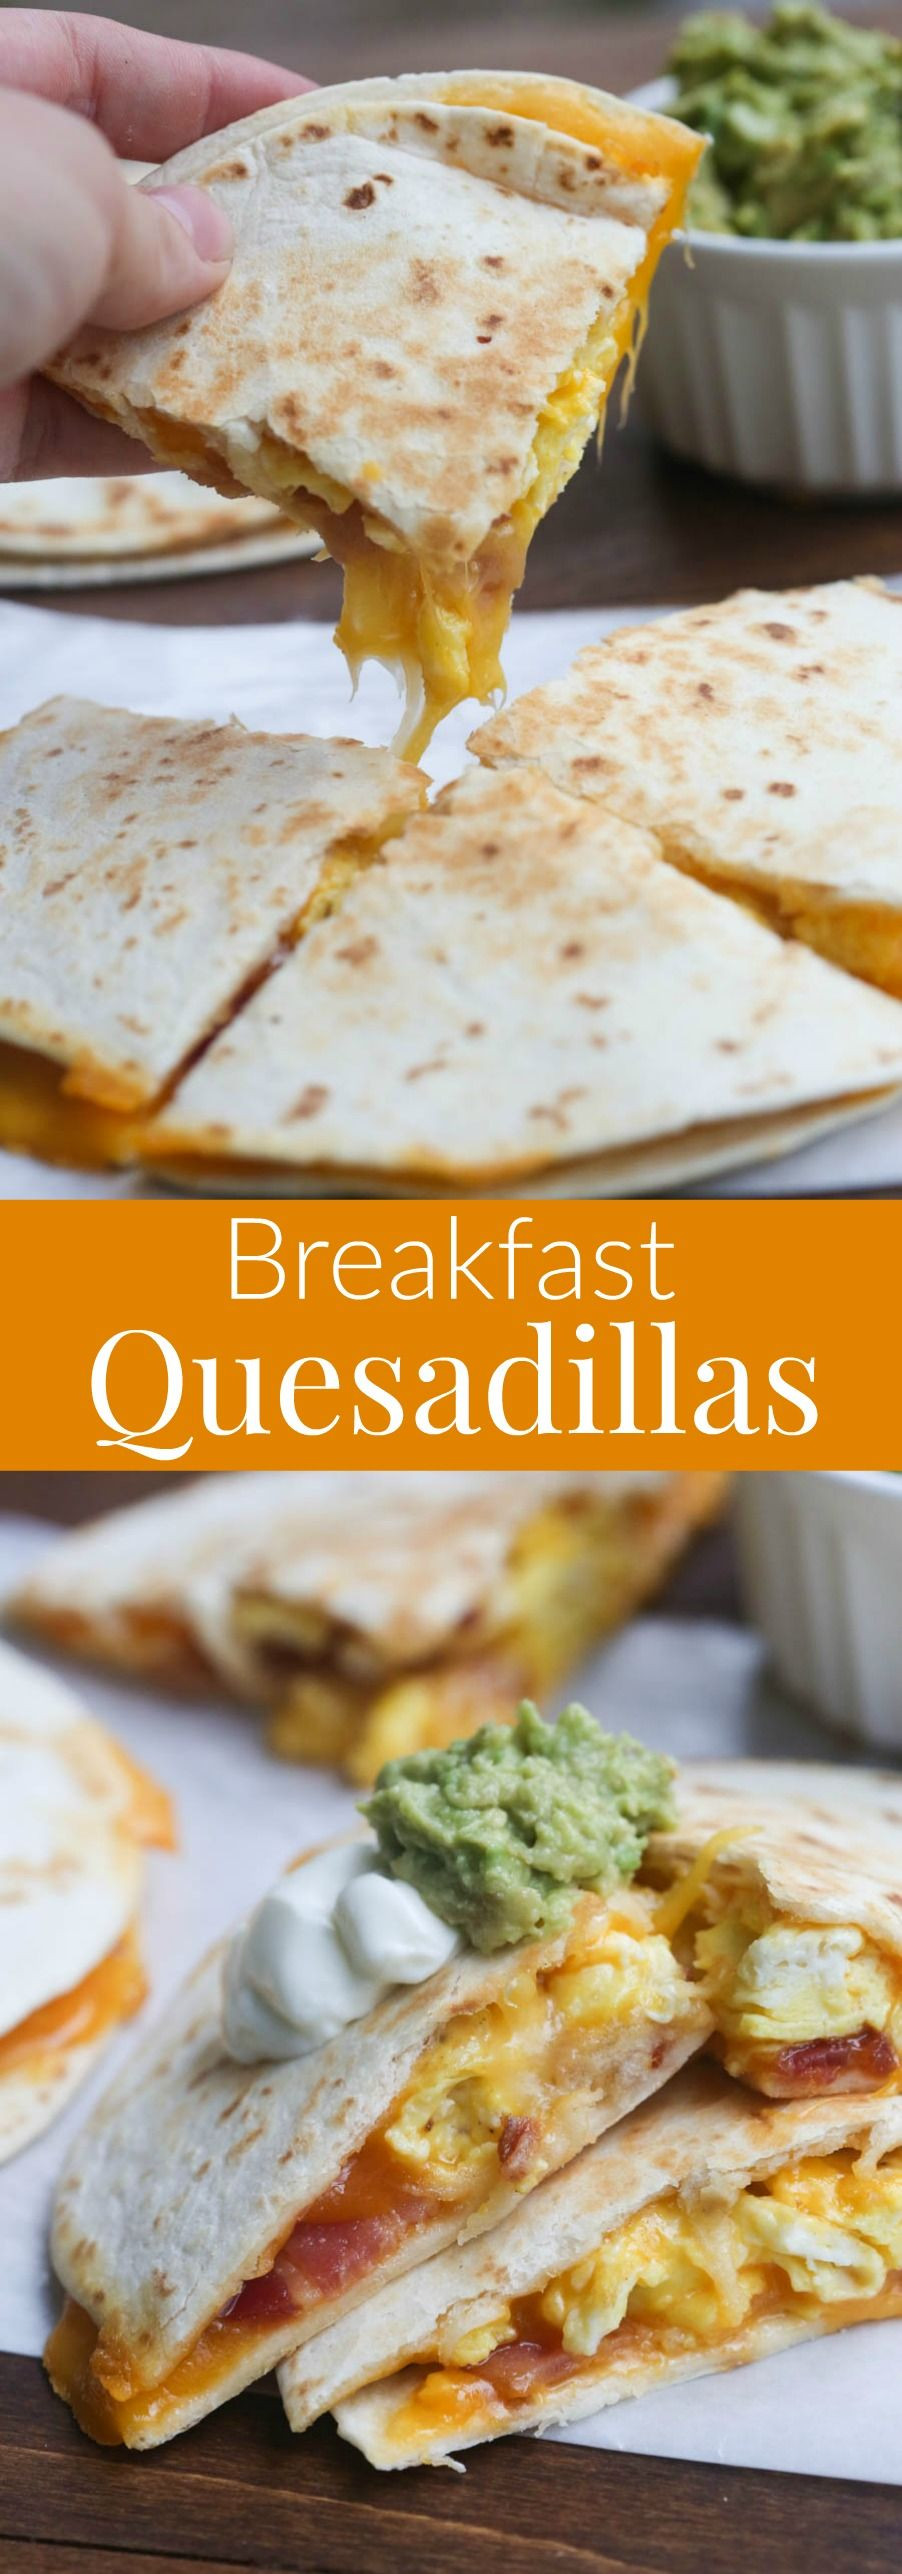 Healthy Breakfast Quesadilla Recipes  Breakfast Quesadillas with bacon egg and cheese An easy